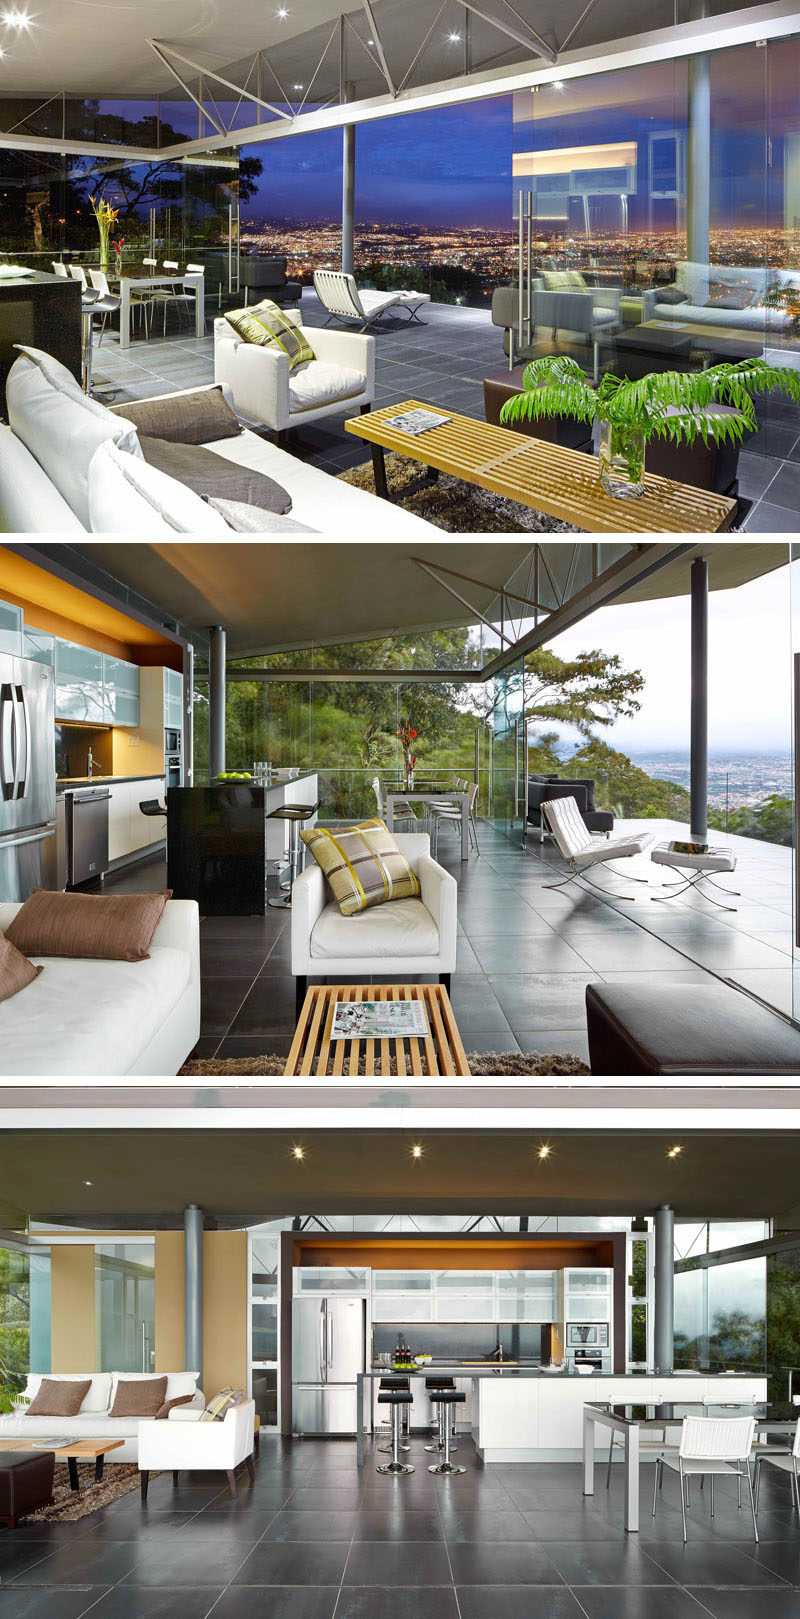 Stepping inside this entertaining space, there's a living room, dining area and a kitchen. On three sides of the room are floor-to-ceiling windows, allowing guests to immerse themselves within the scenery.